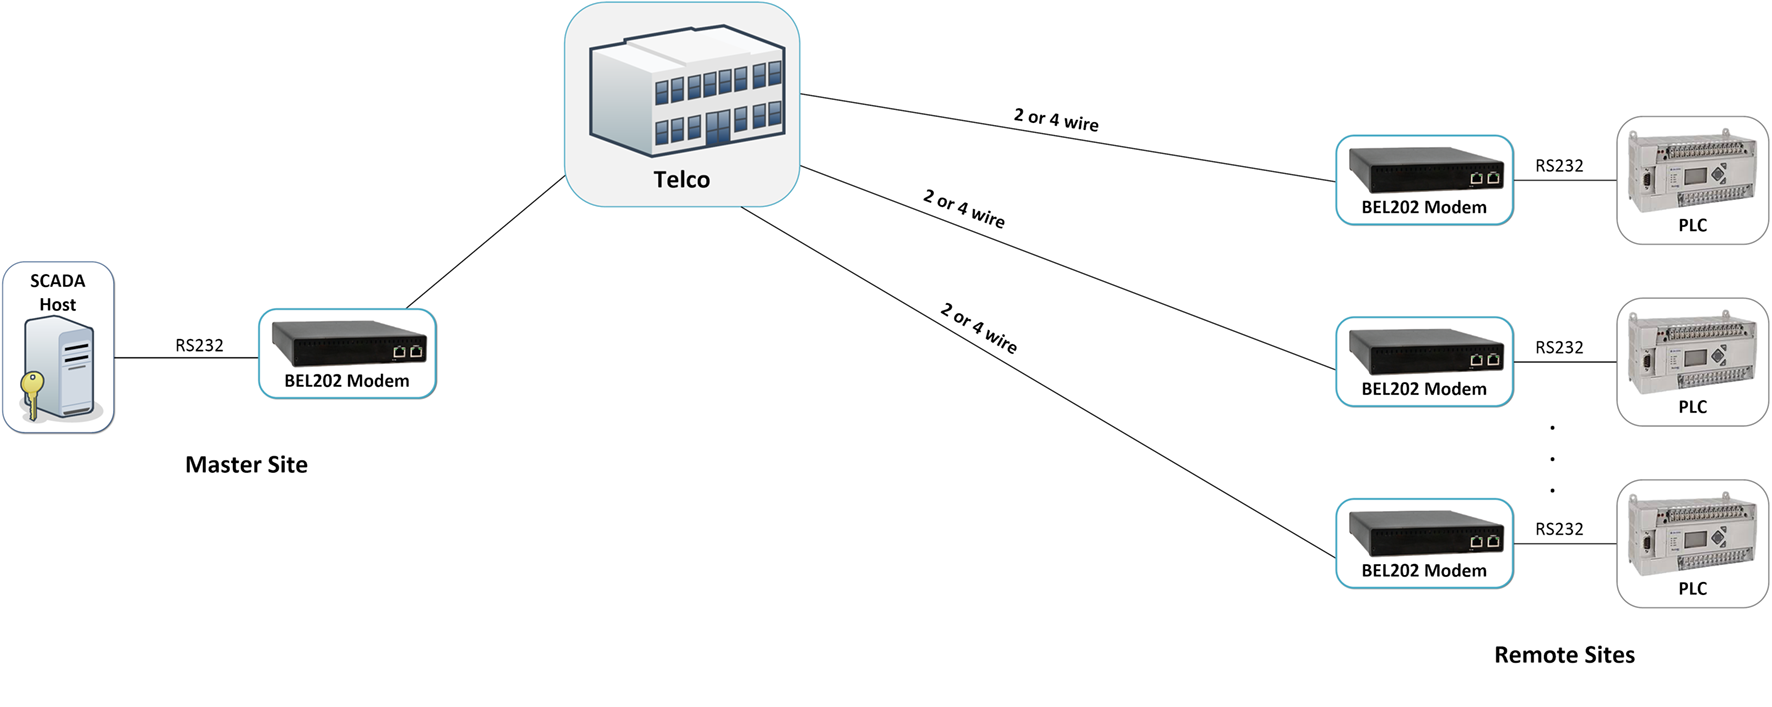 Leased Line Replacement for SCADA Communication